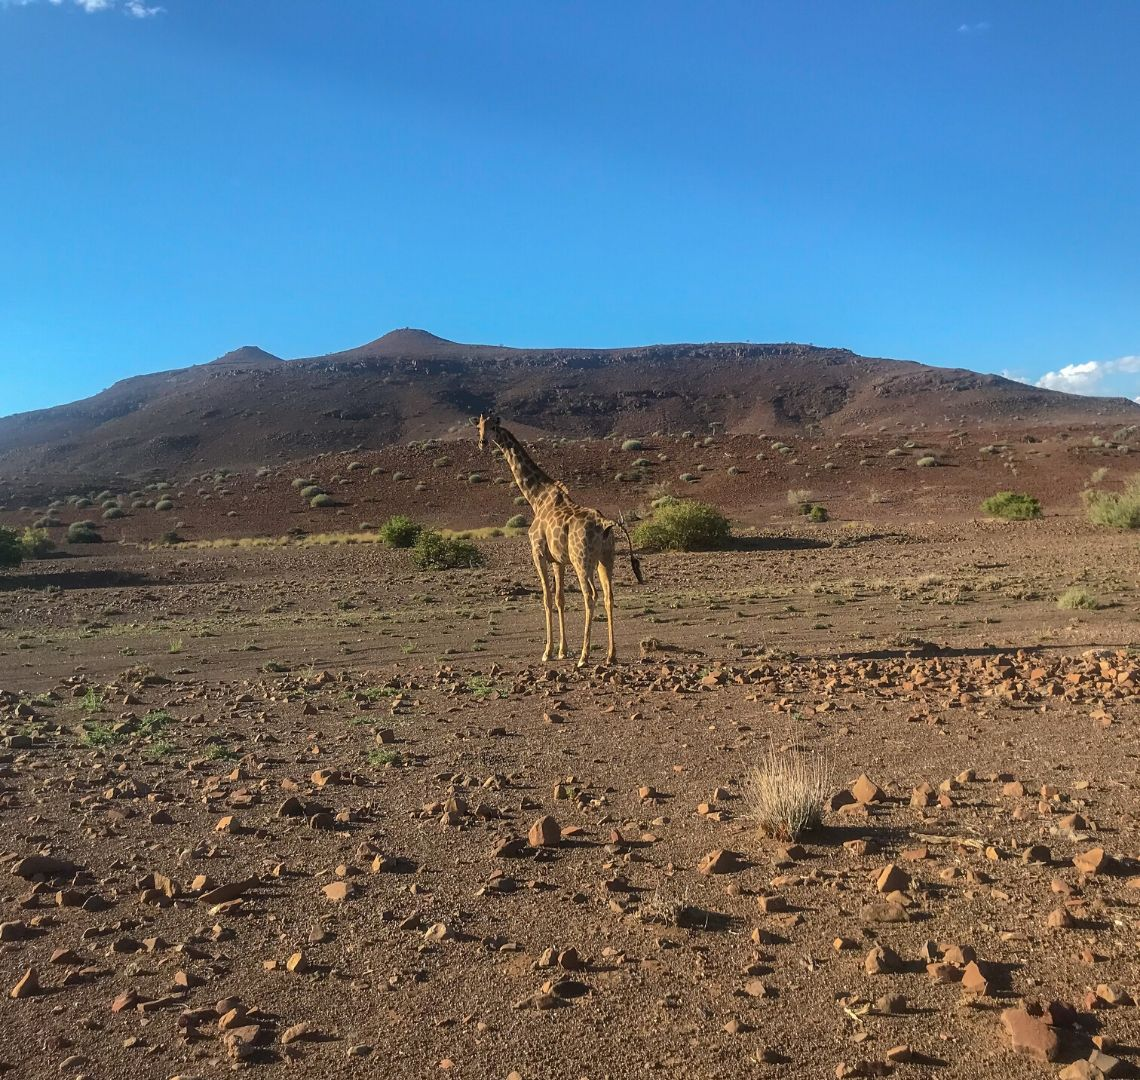 2 Week Namibia Itinerary - a lone giraffe standing on scrubby ground in Palmwag Concession area. It has turned to look at us as if to marvel at us as much as we marvel at it.